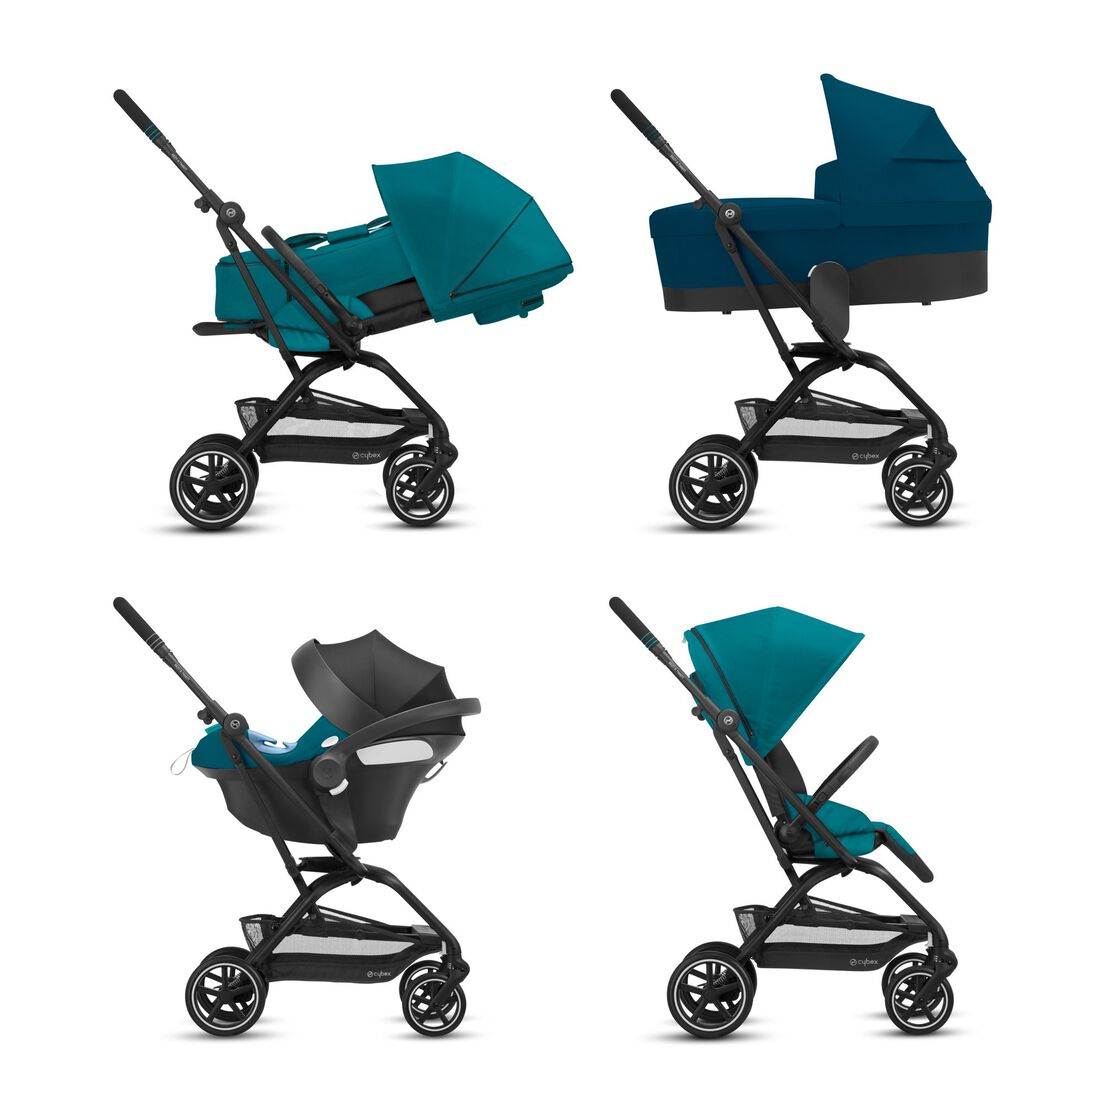 CYBEX Eezy S Twist+2 - River Blue (Schwarzer Rahmen) in River Blue (Black Frame) large Bild 7